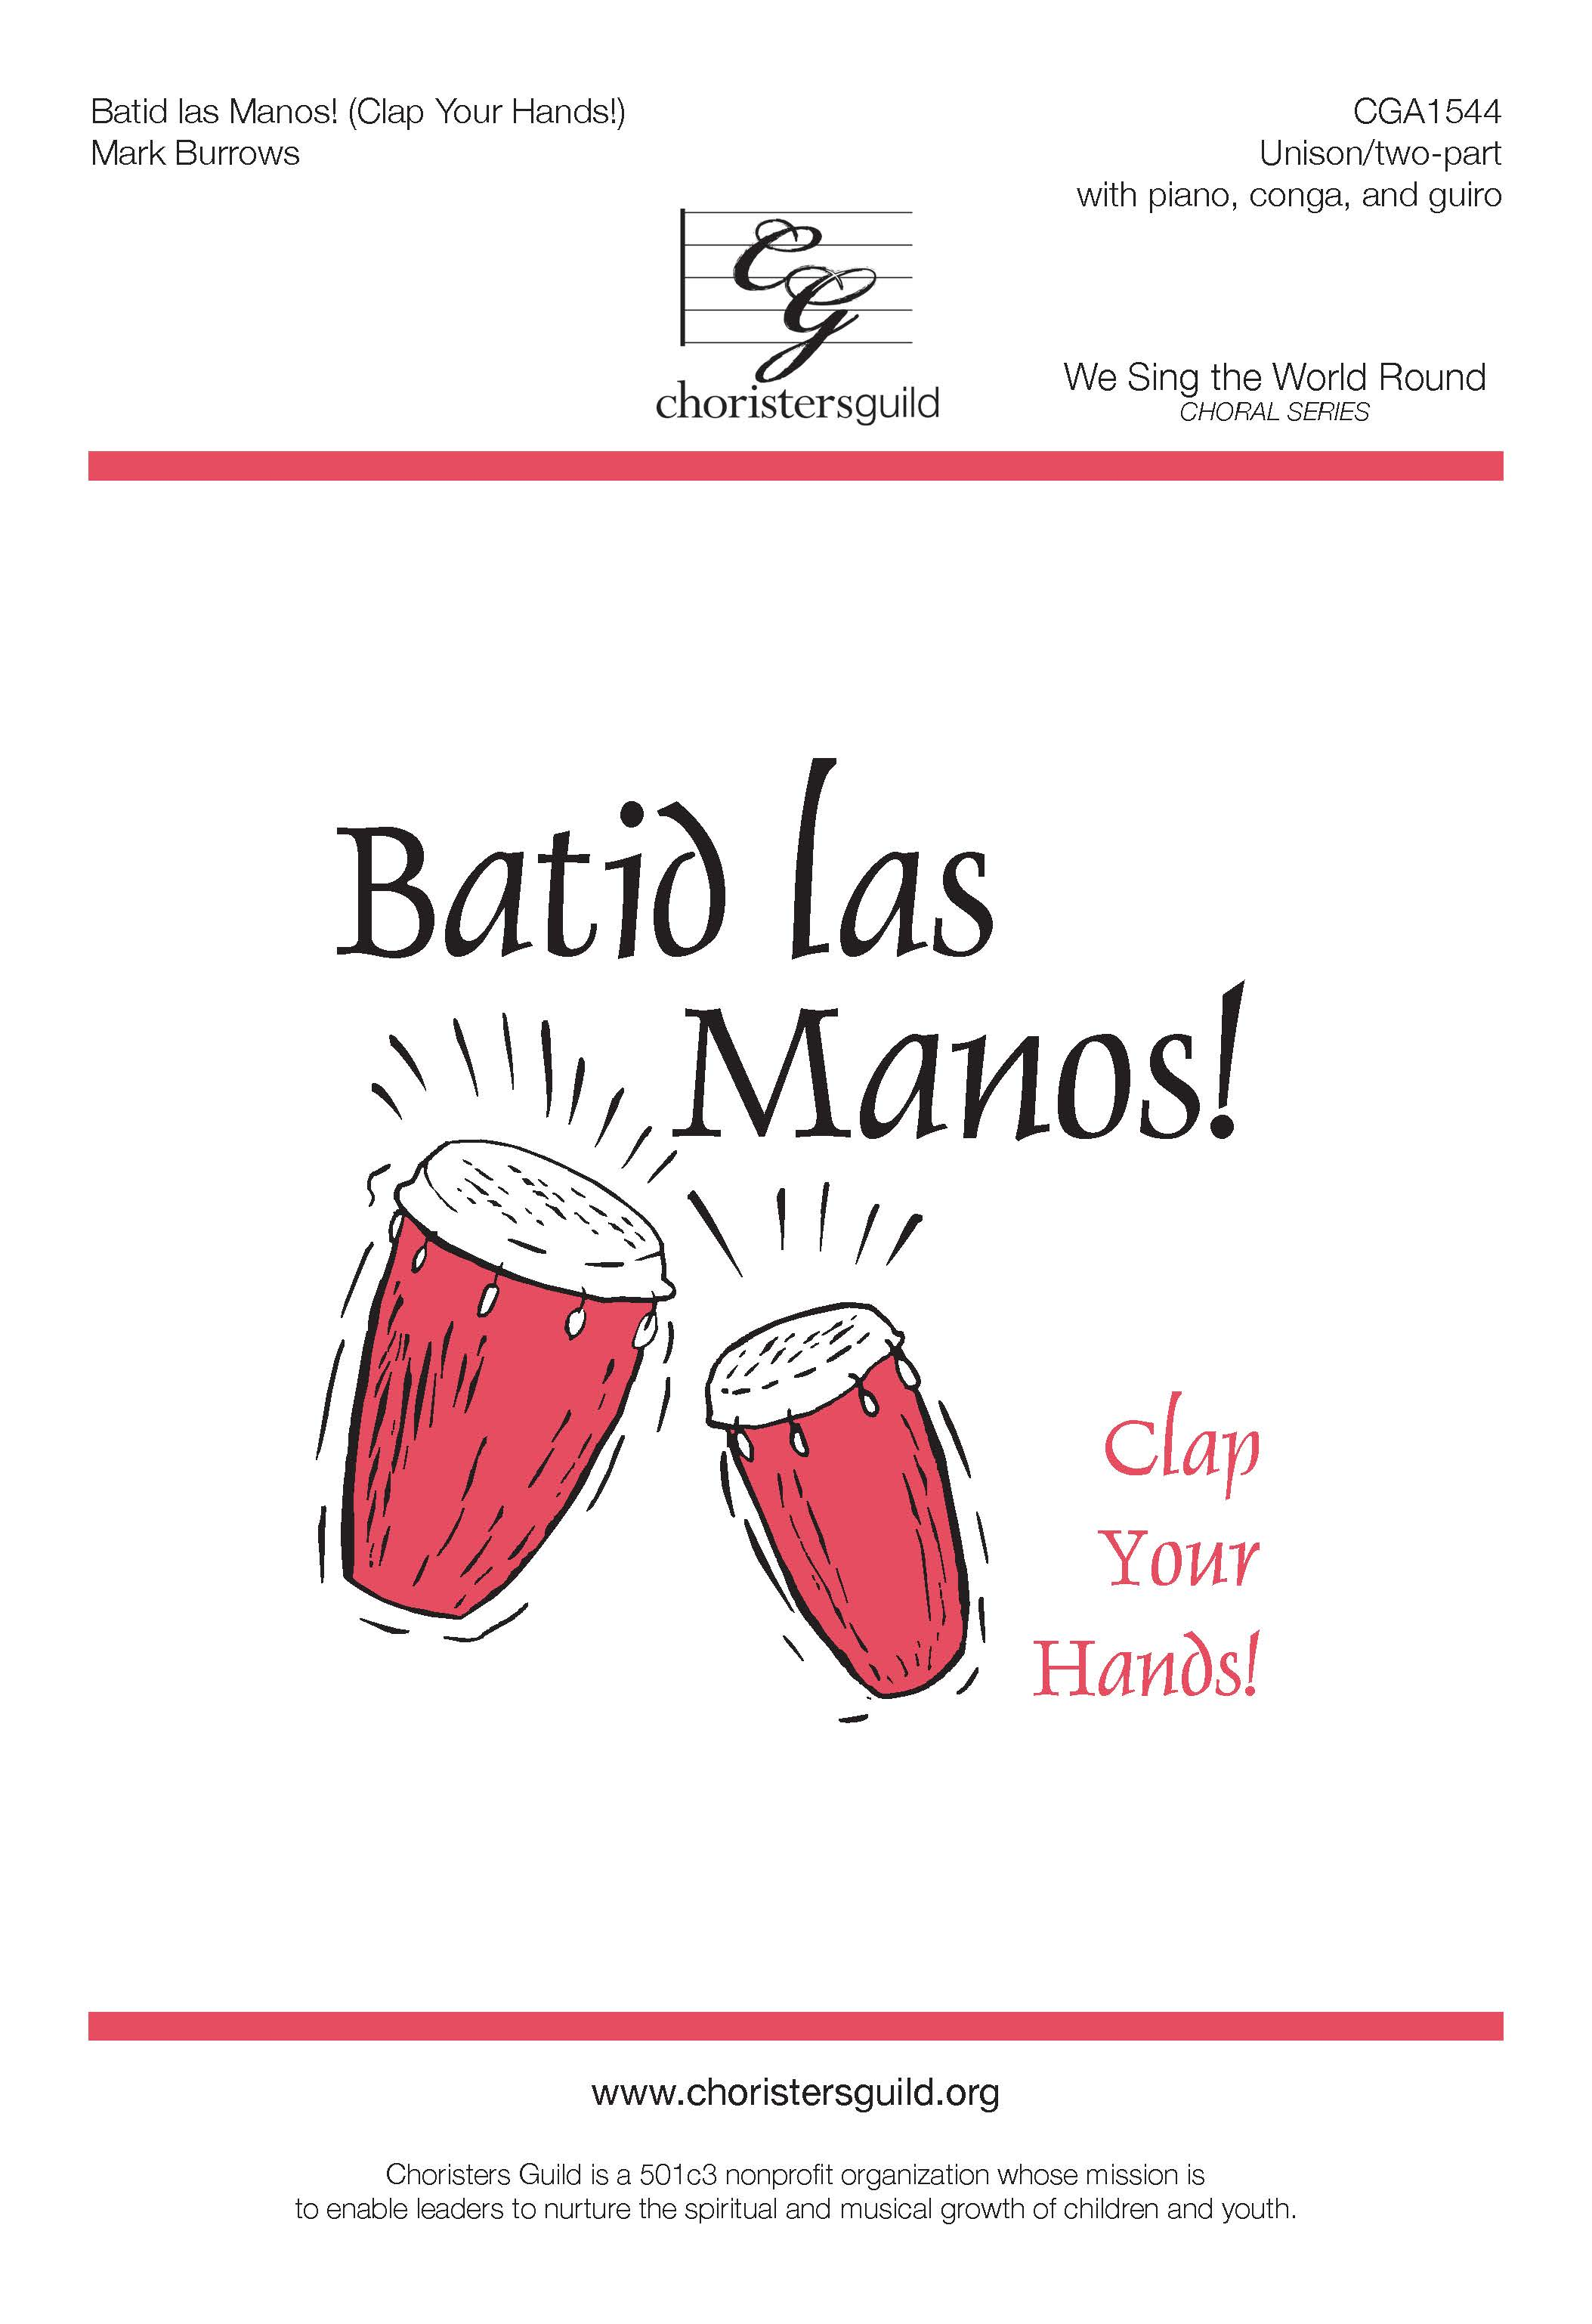 Batid las Manos! (Clap Your Hands!)